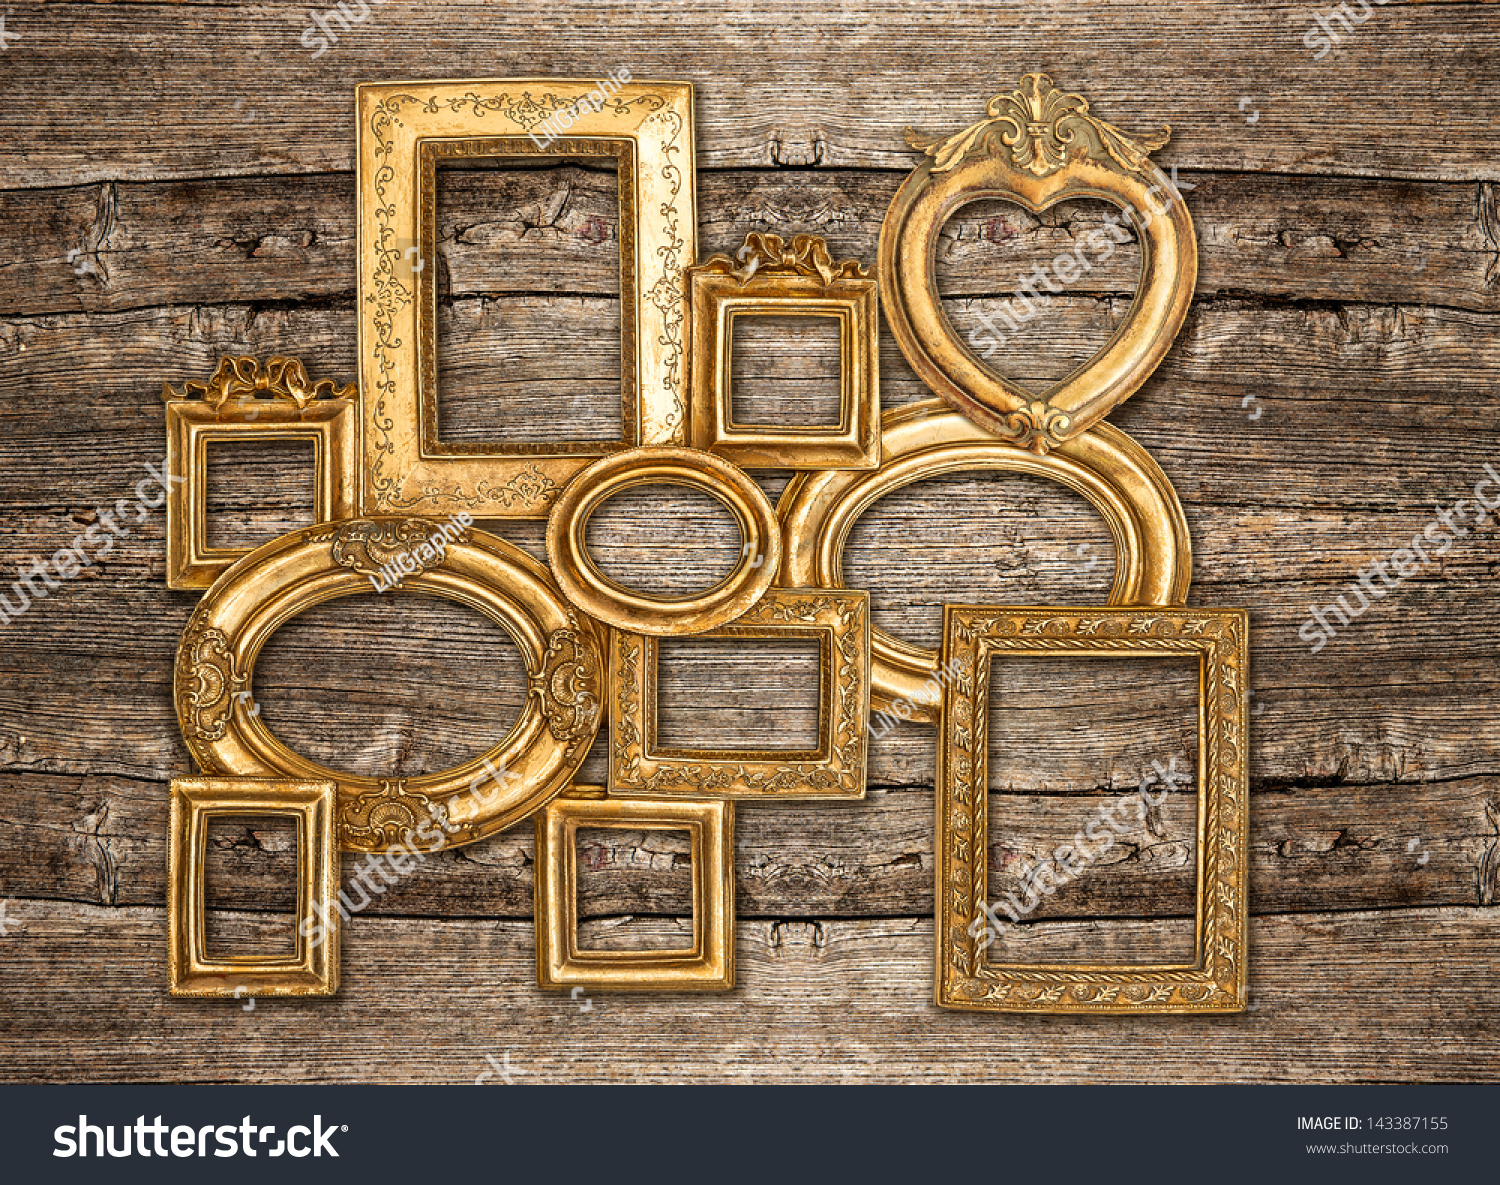 Antique Golden Framework Rustic Wooden Wall Stock Photo